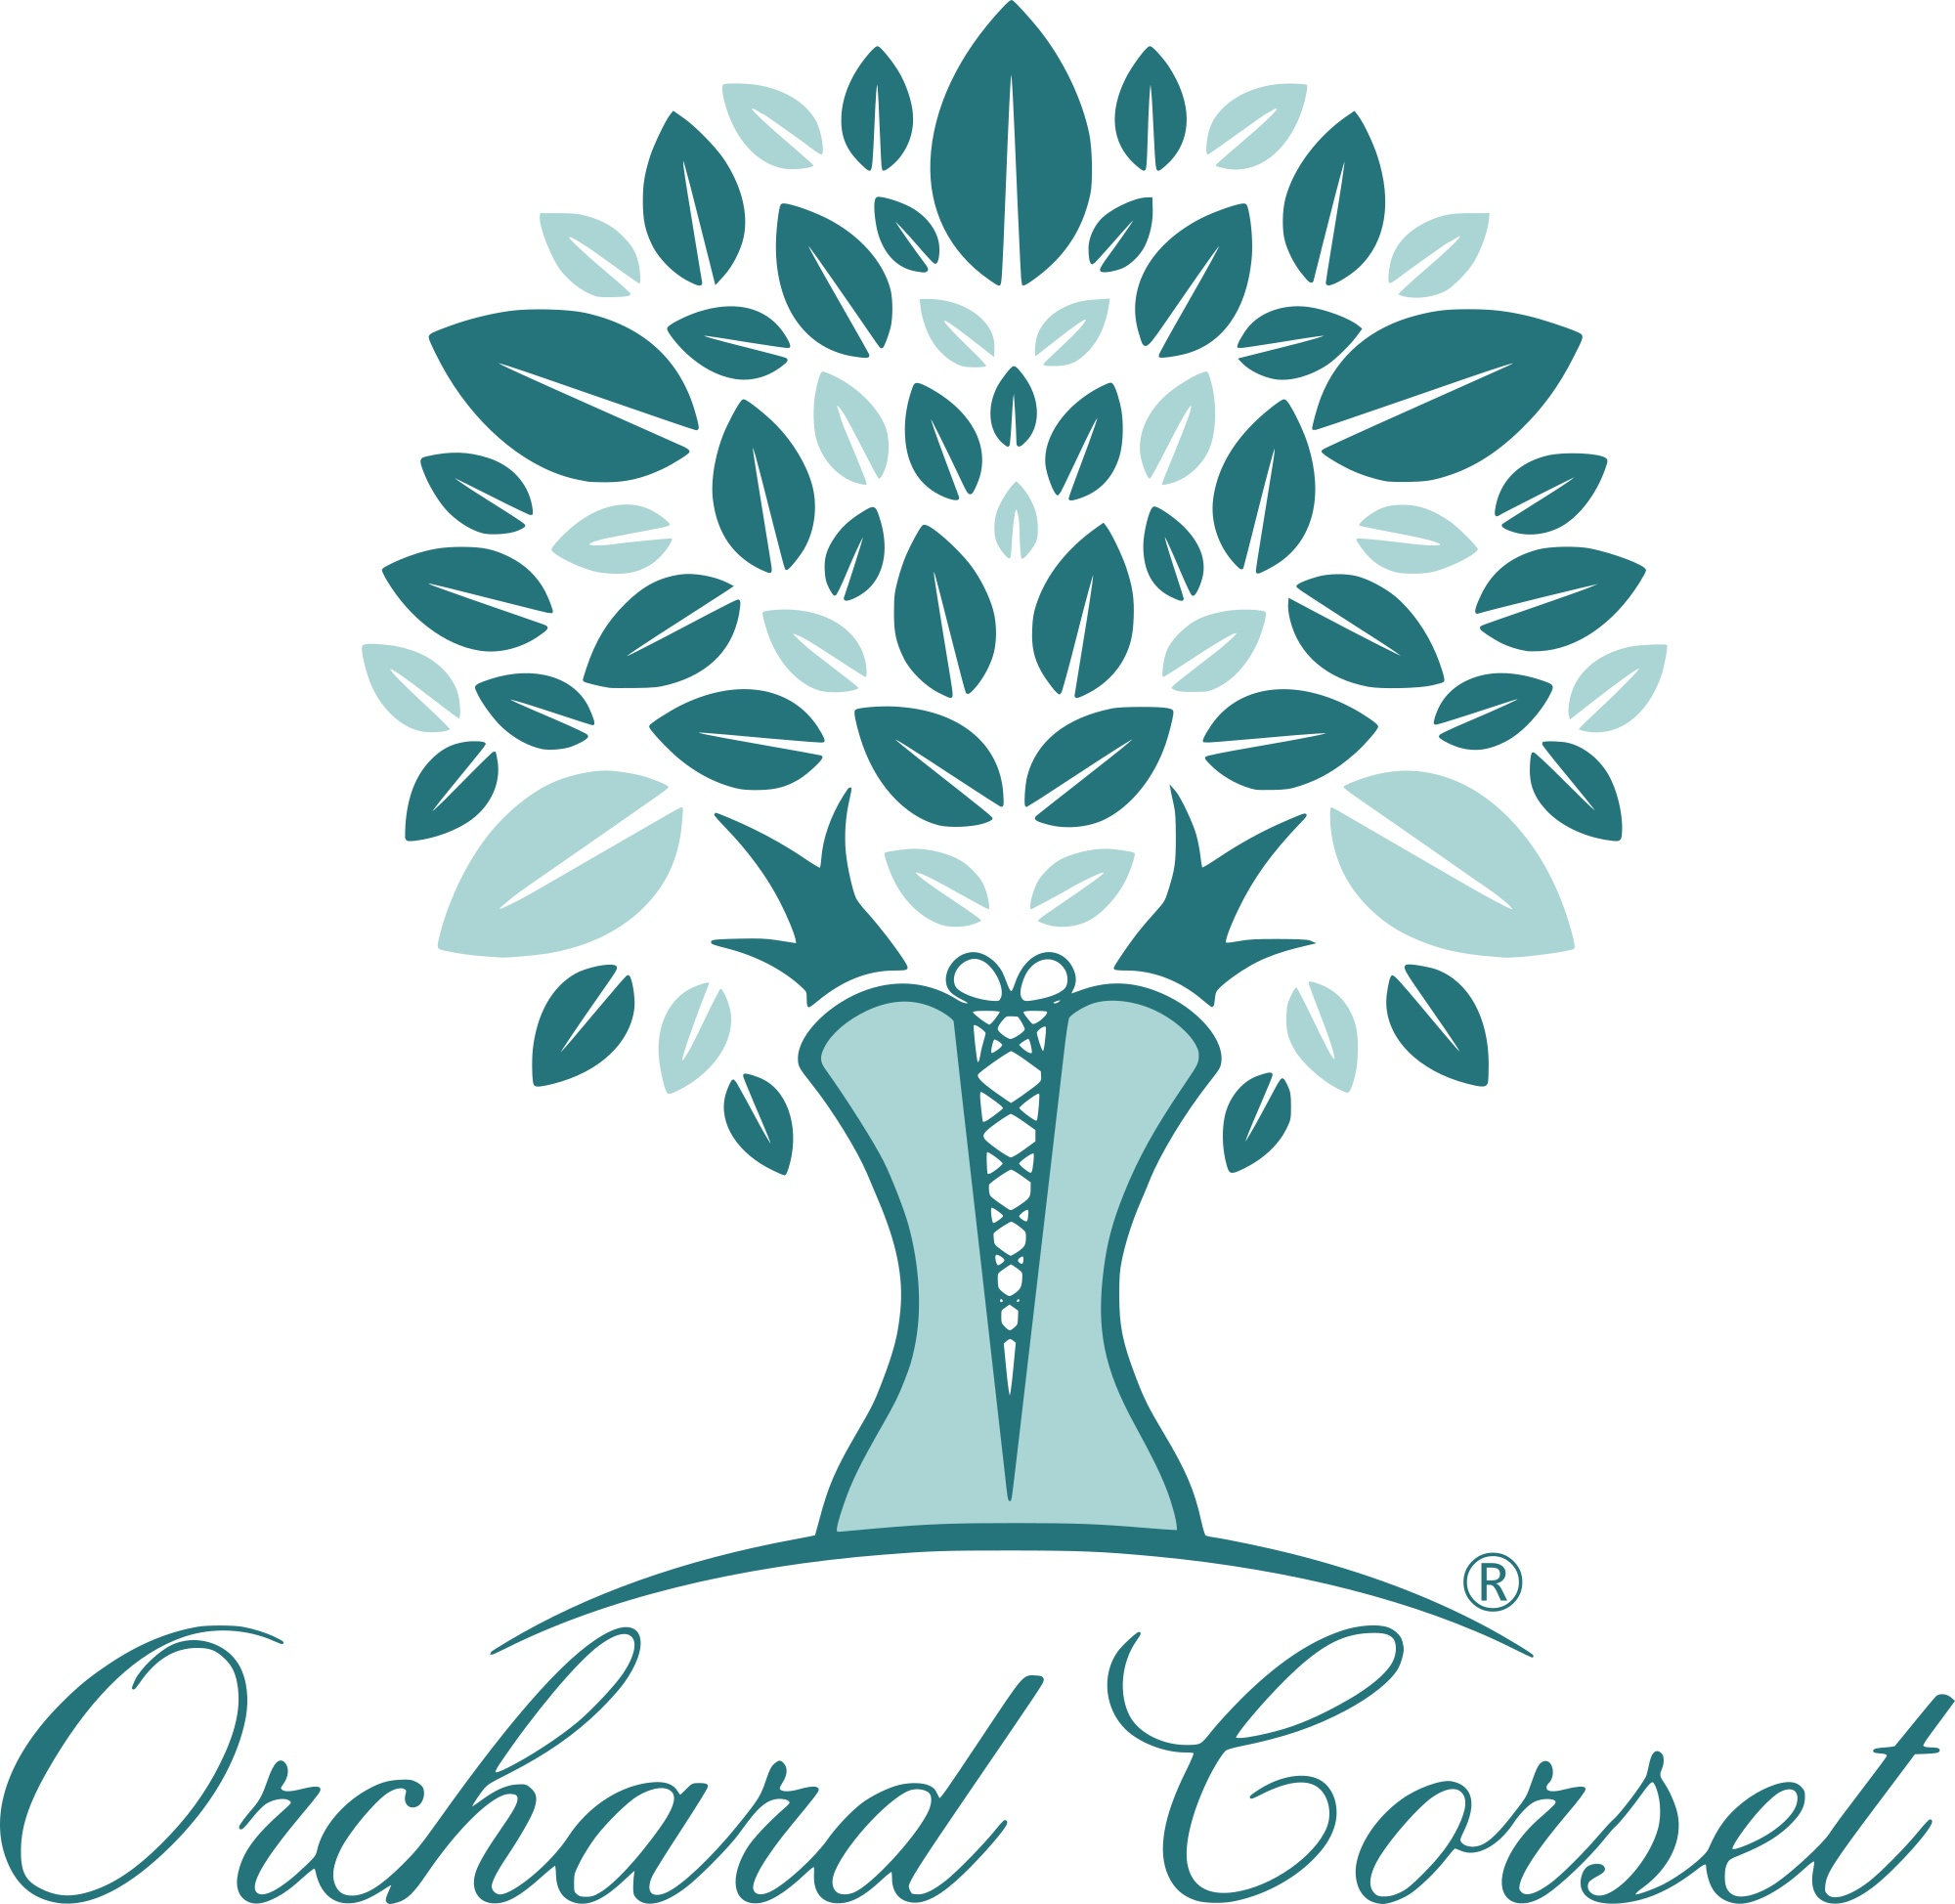 Orchard Corset is the leading off-the-rack corset retailer in America for a reason; we have the BEST customer care and sizing experts in the world. Want proof? We have steel-boned corsets to suit your purpose: waist training, wedding, costumes, back pain relief, or just for fun. Show the world your hourglass curves with an Orchard Corset.